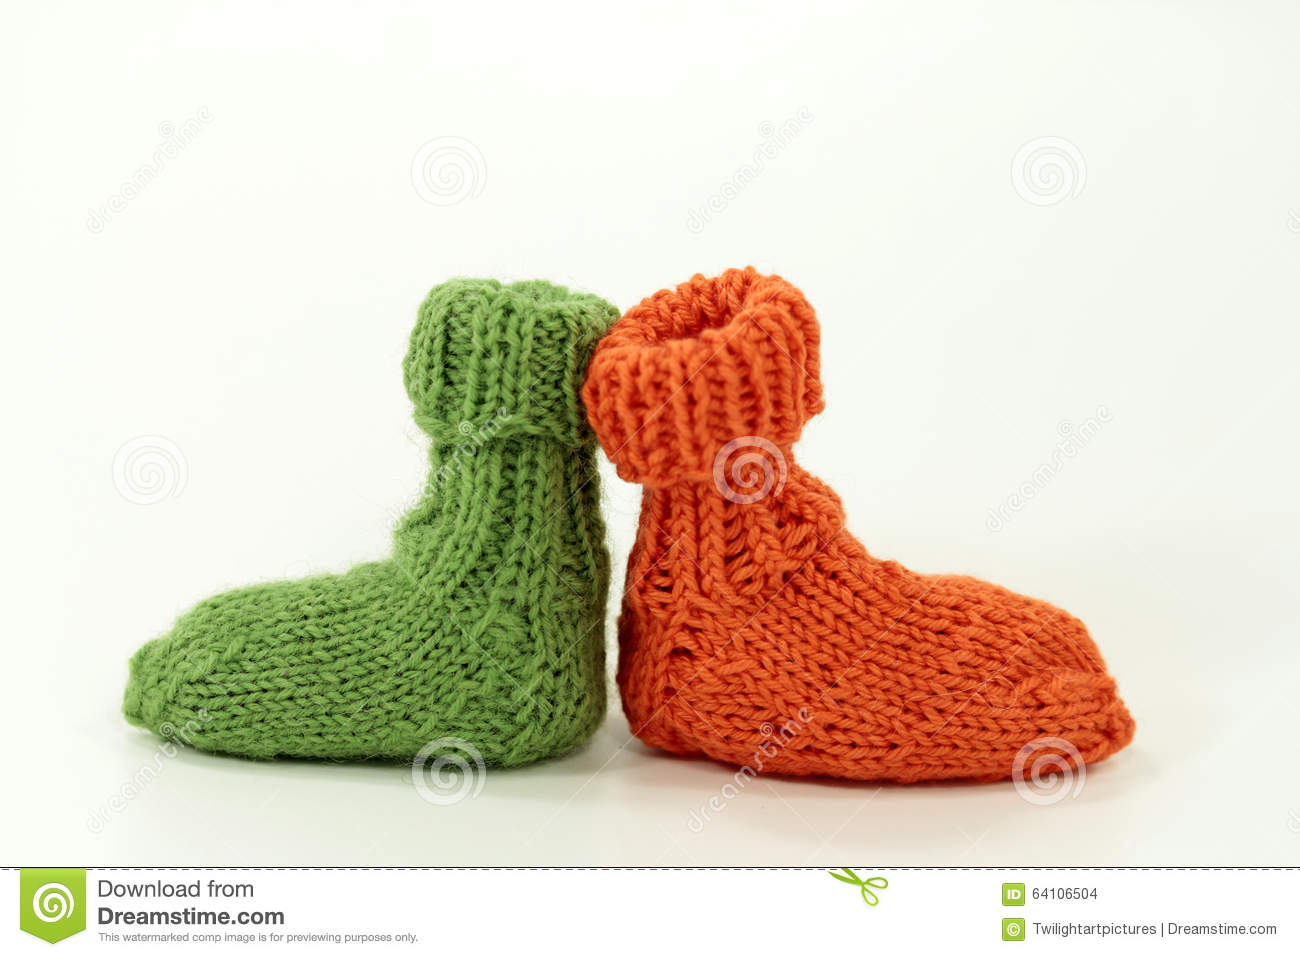 Knitting Pattern For Small Socks : Very Small, Handmade Knitted Sock For Dolls Or Babys Stock Photo - Image: 641...